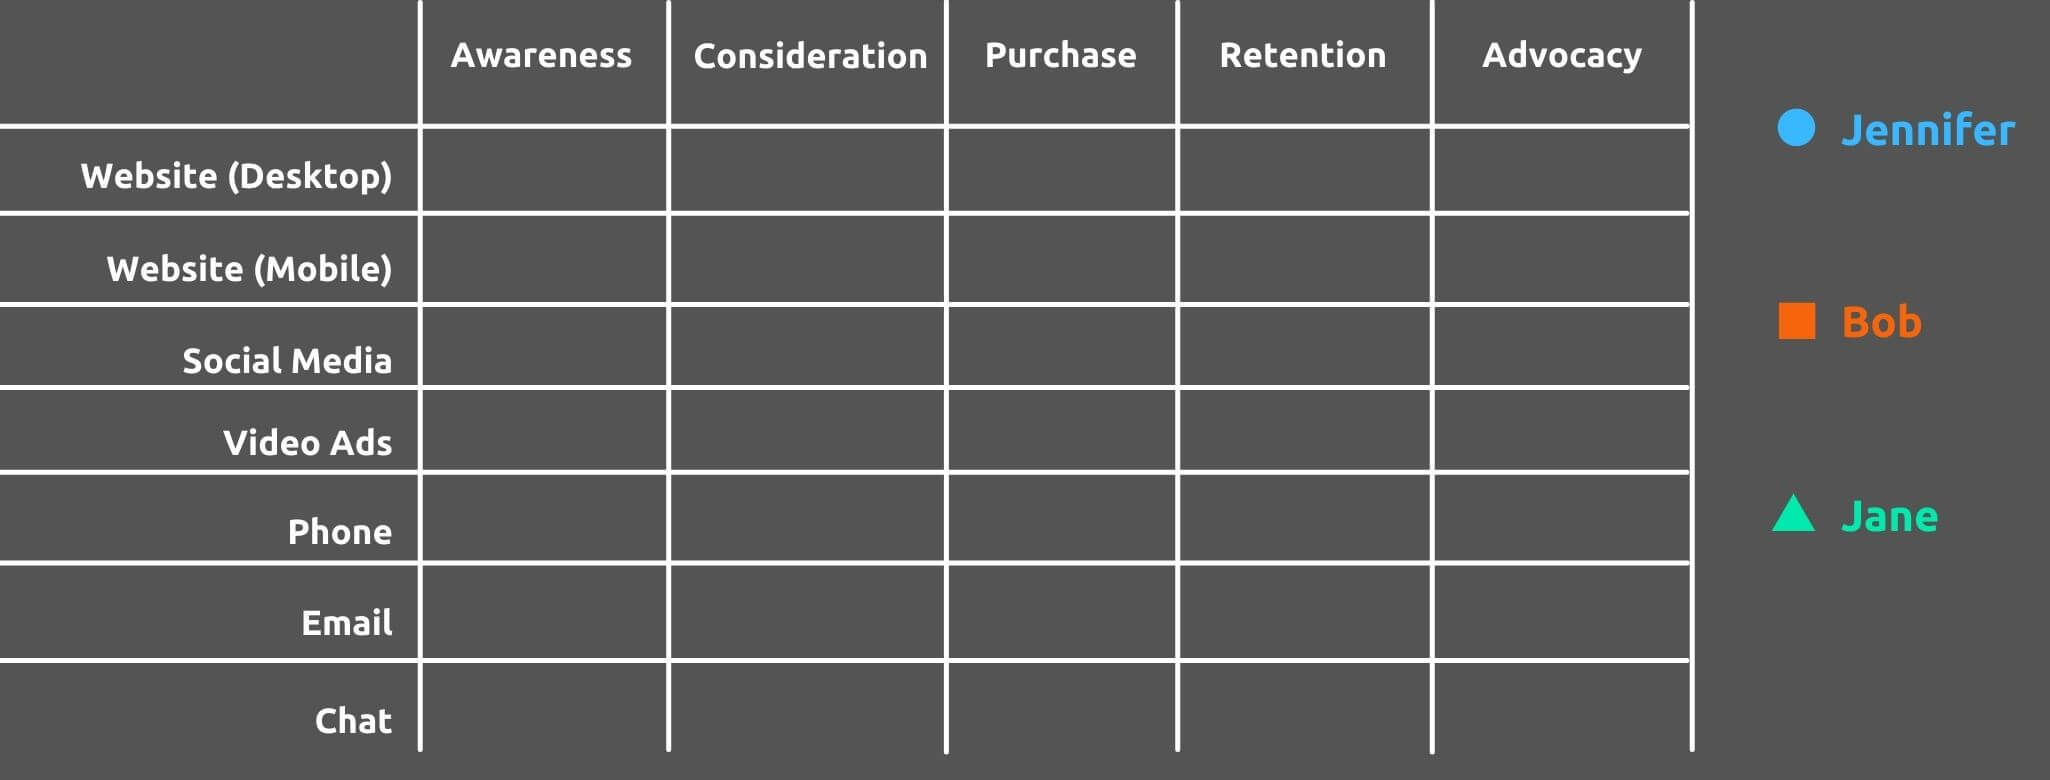 Define Purchase Journey Stages - How to Create a Customer Journey Map - Replyco Helpdesk Software for eCommerce